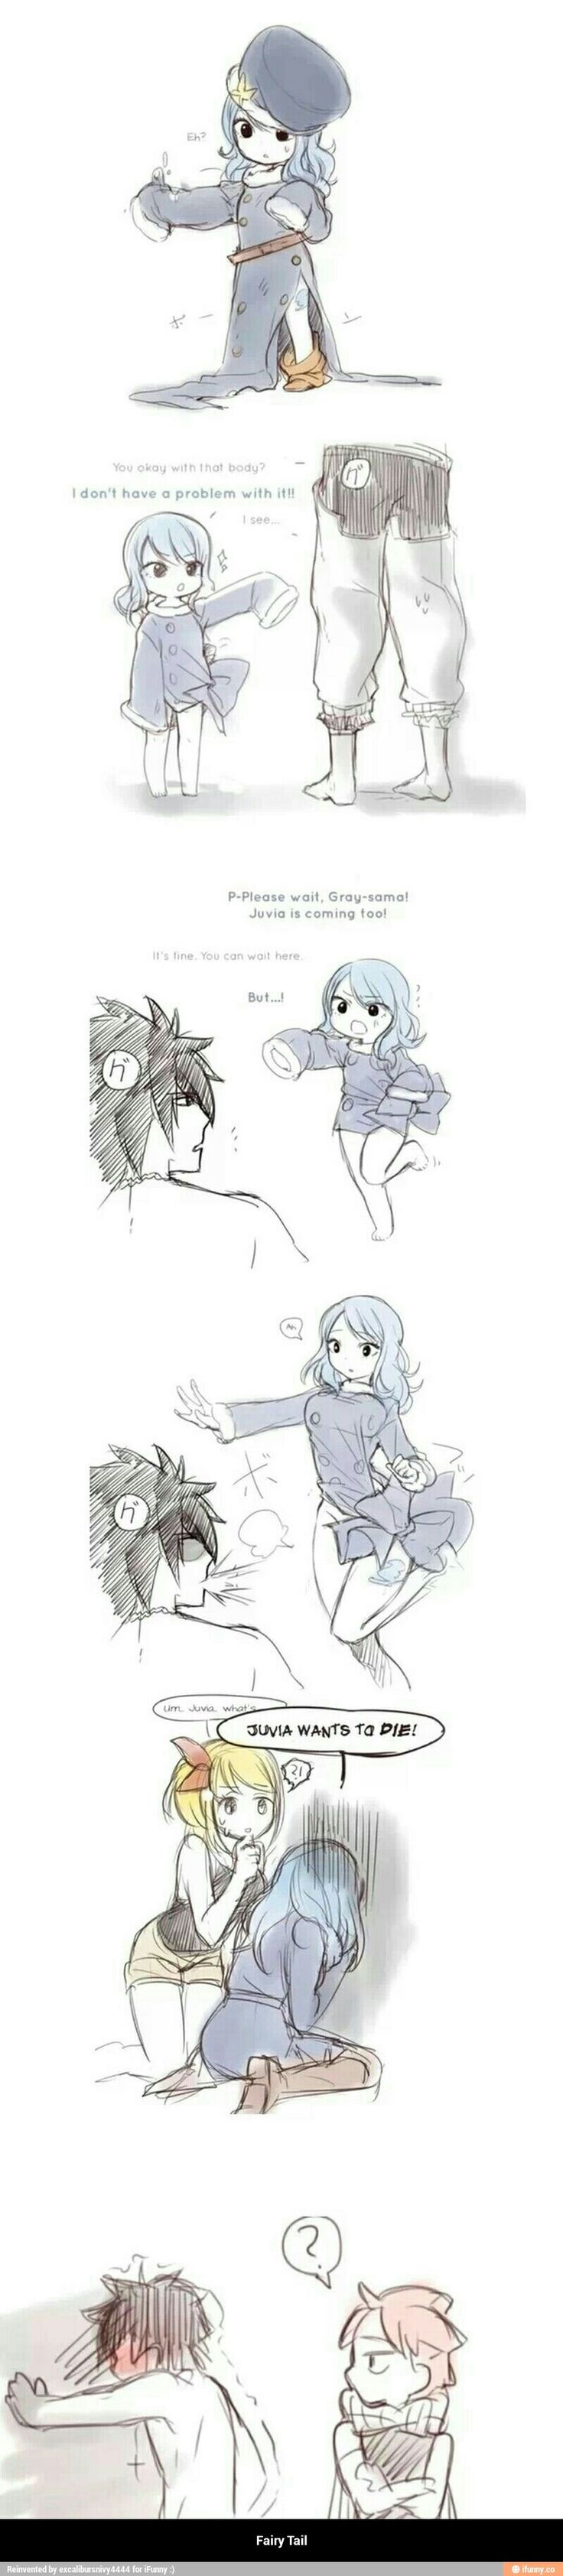 Gruvia - hate the ship but love this anyway!